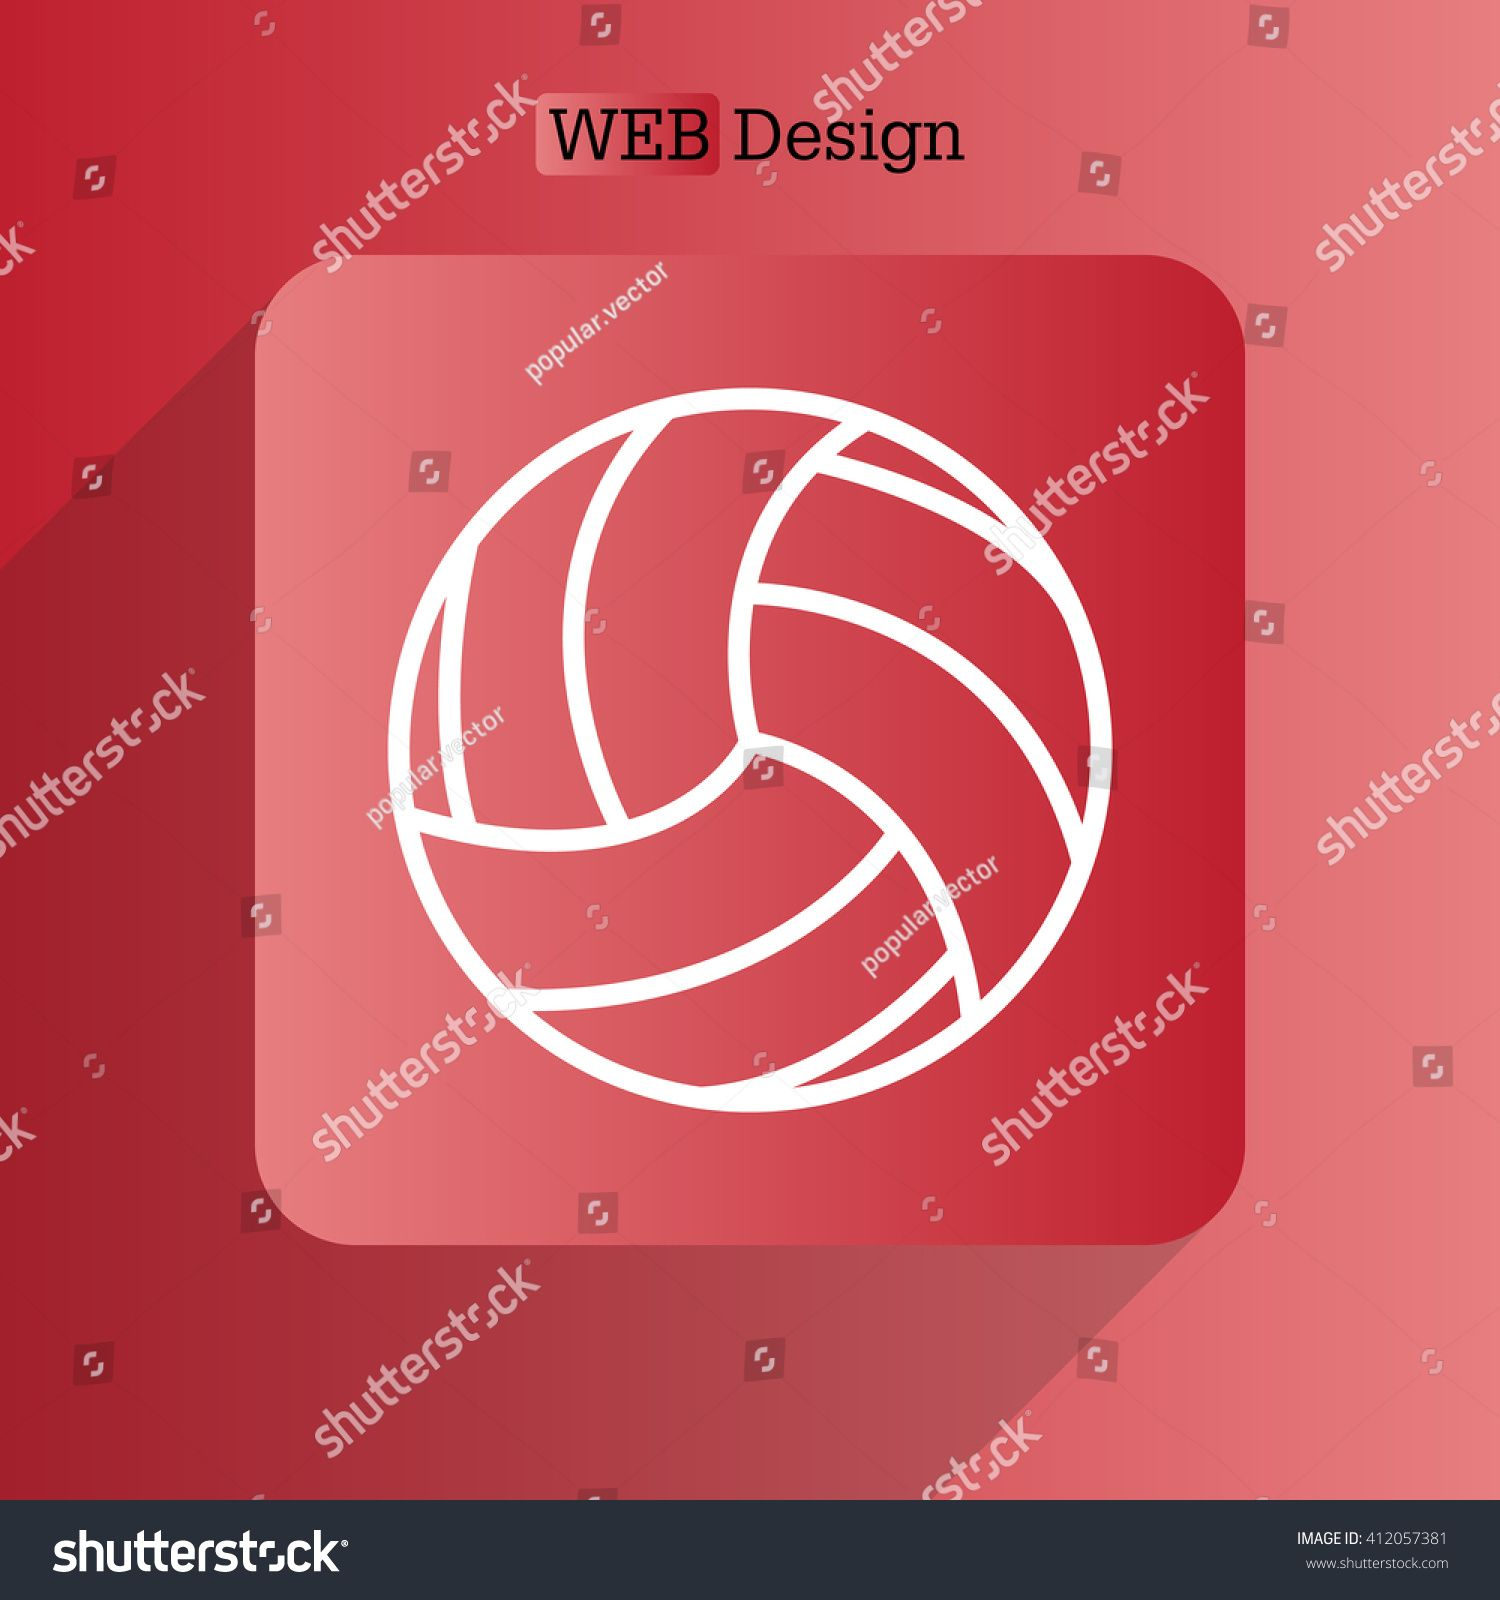 volleyball ball #Ad , #spon, #volleyball#ball